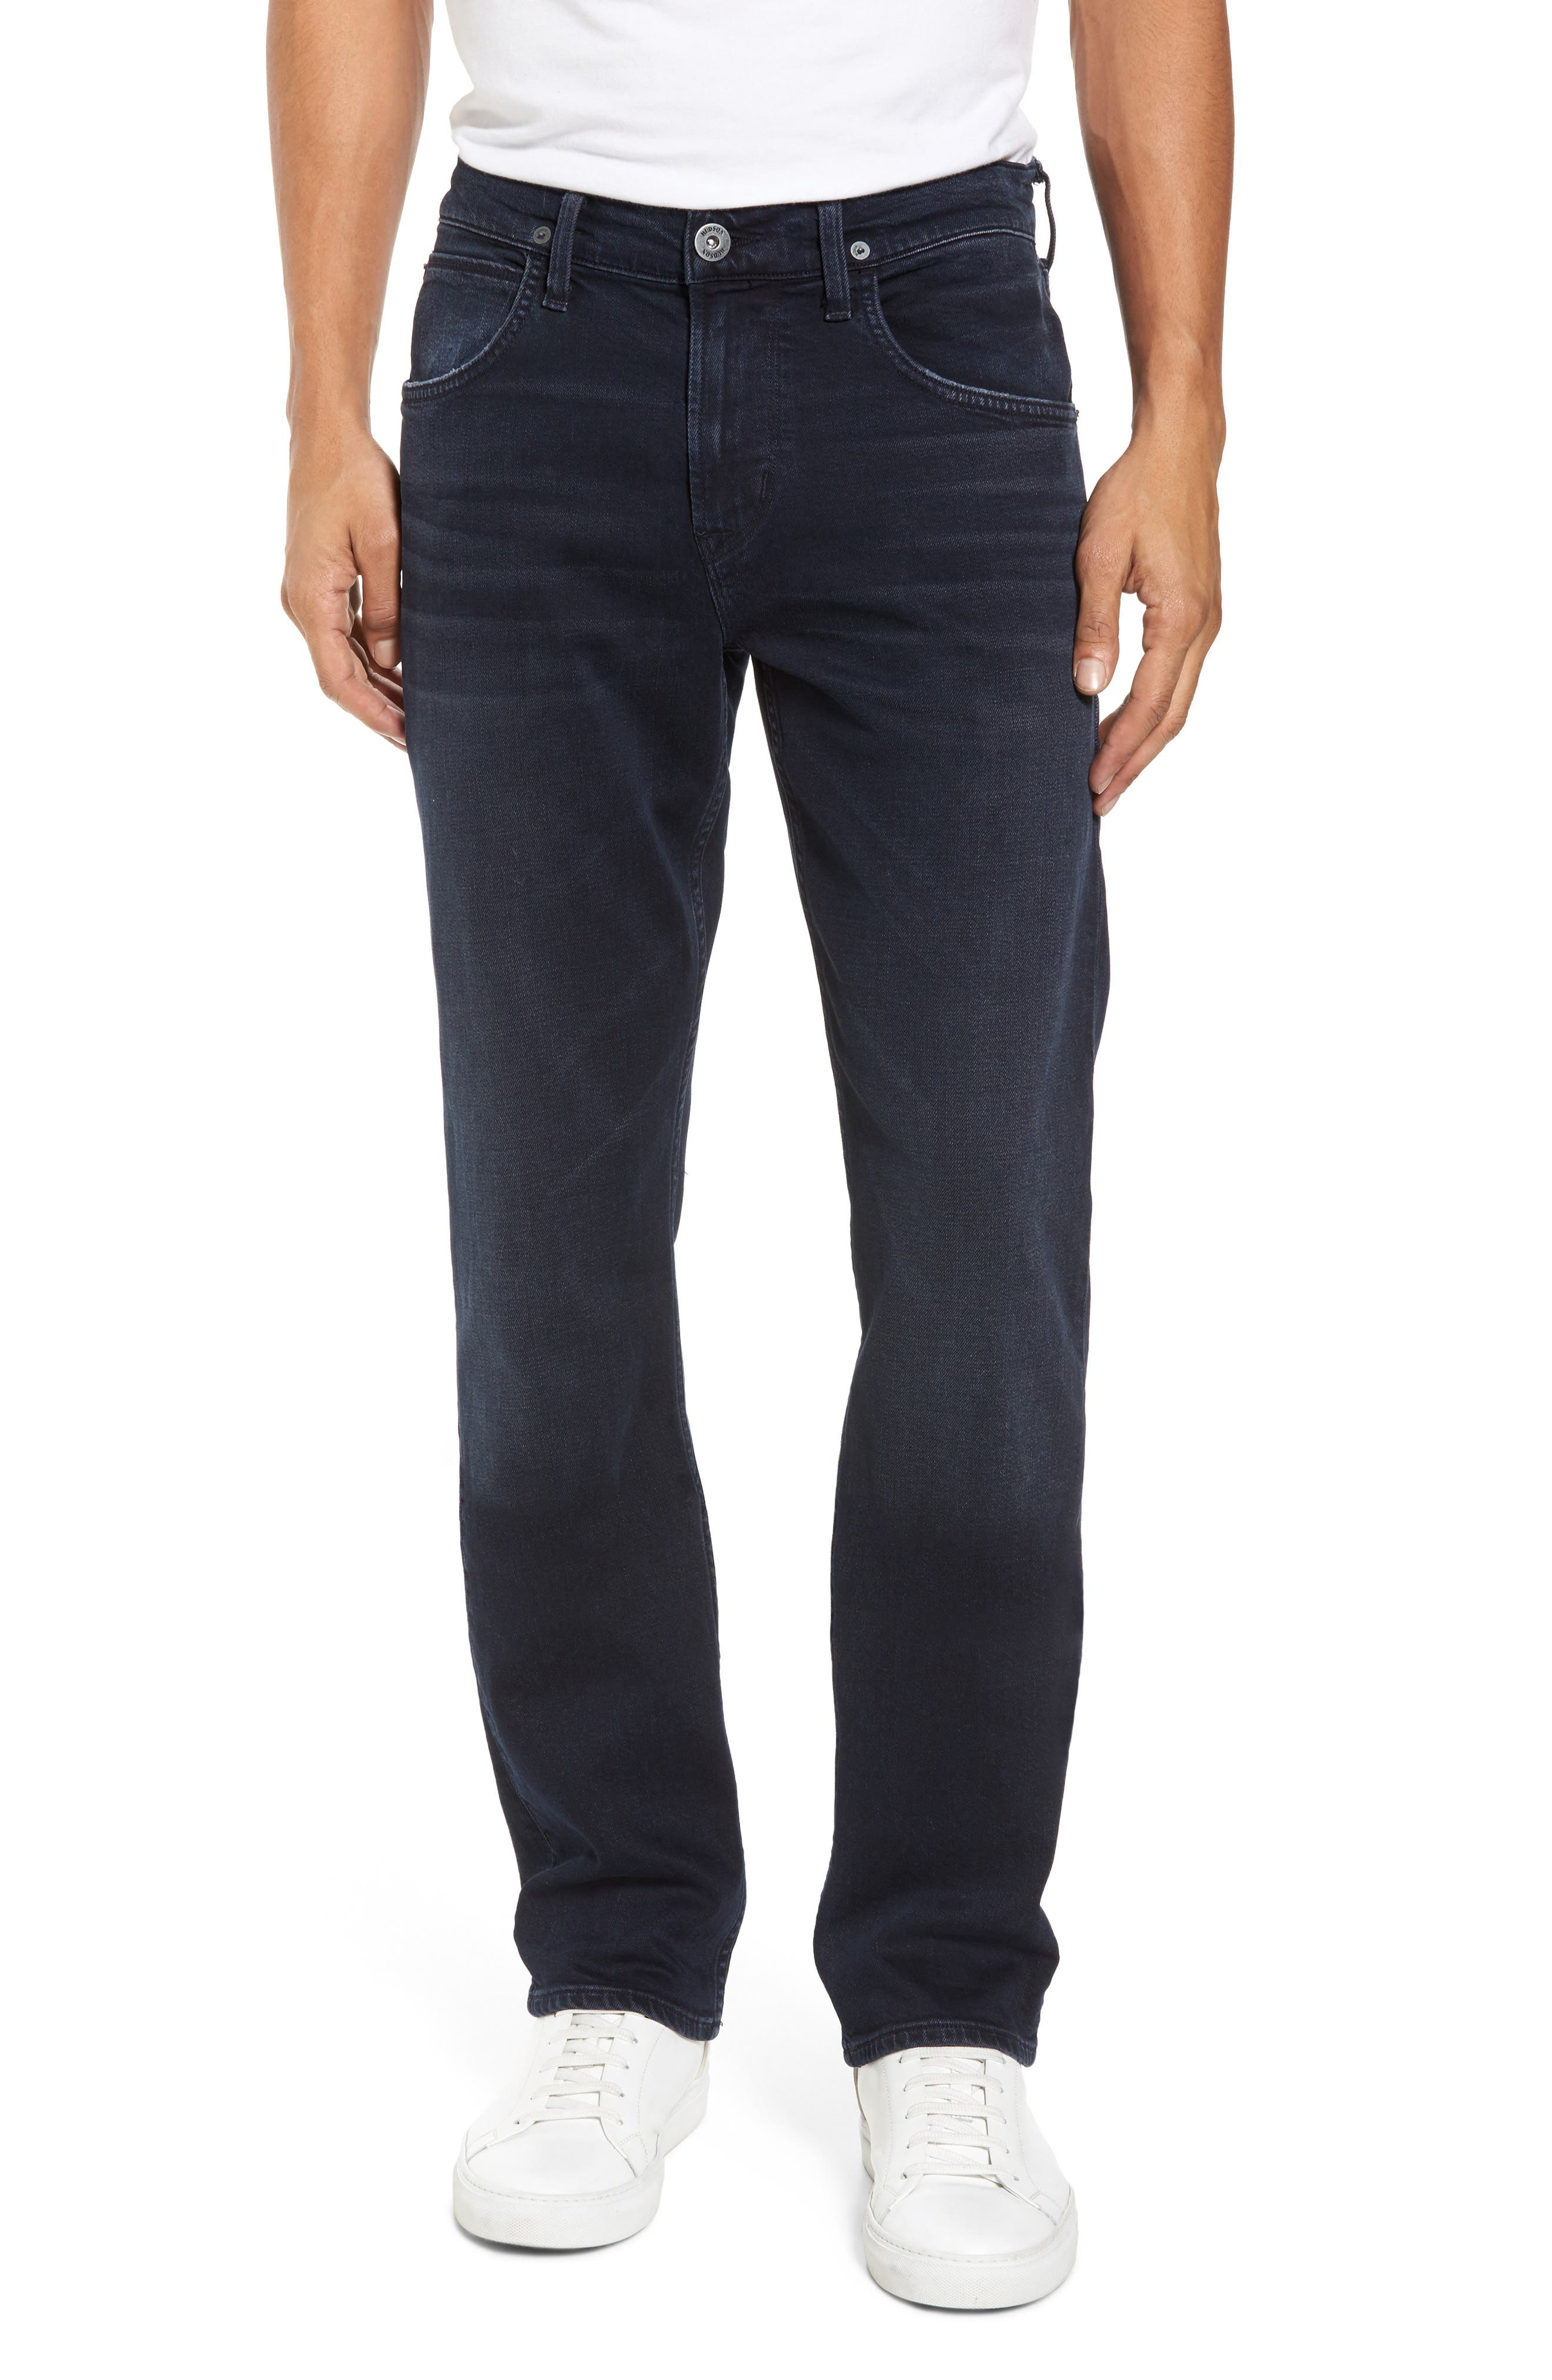 Byron Slim Straight Leg Jeans,                         Main,                         color, 404